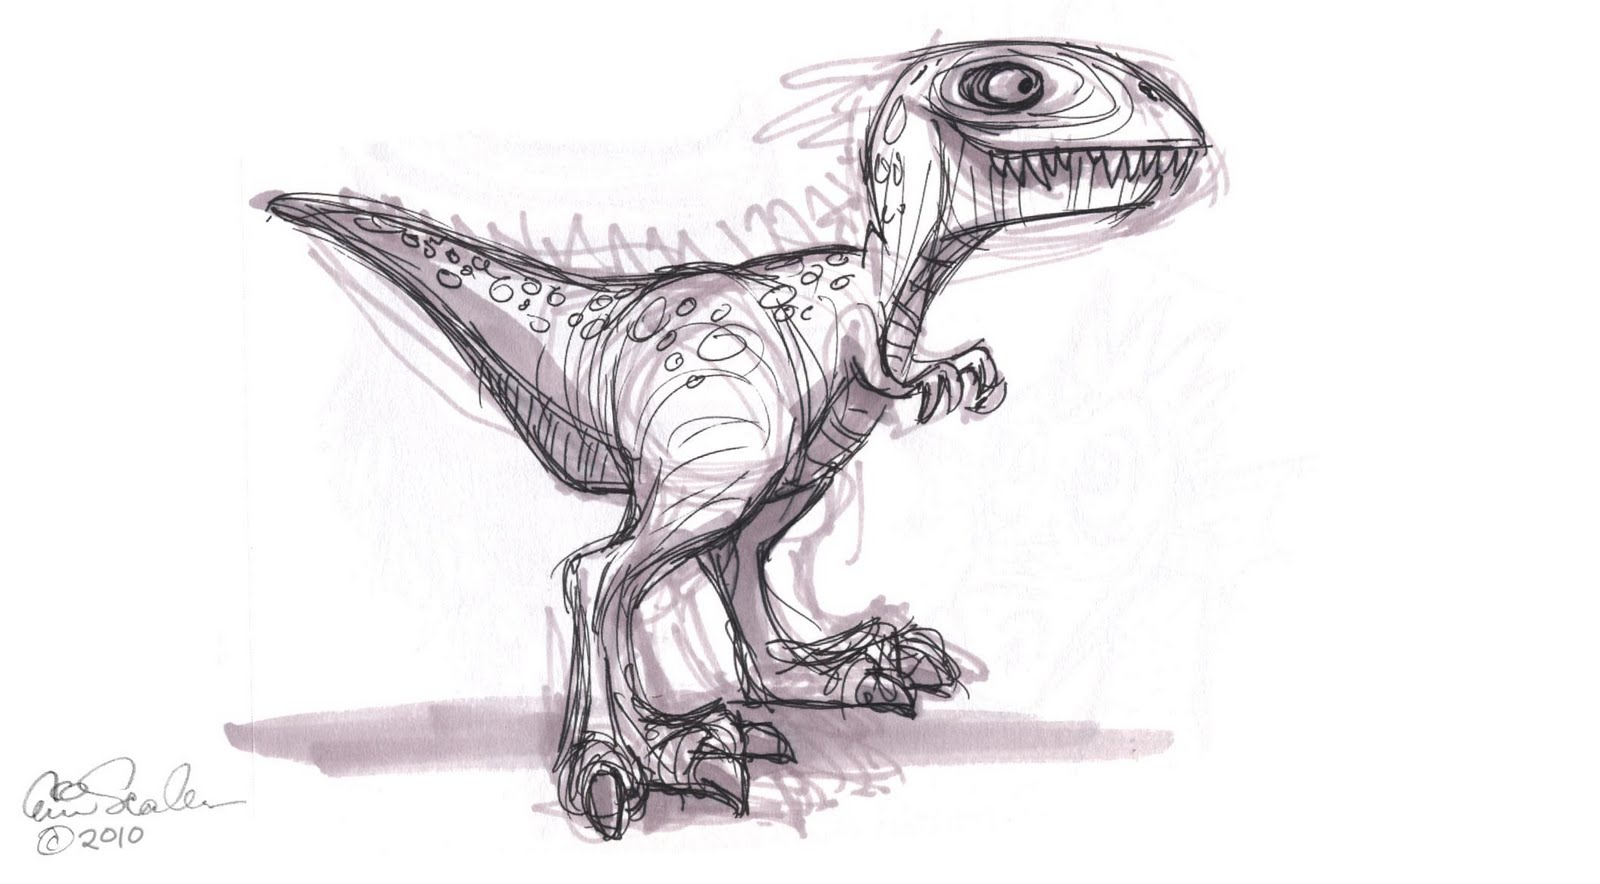 Jurassic Park Dinosaur Drawings The Ol Sketchbook Dinosaurs